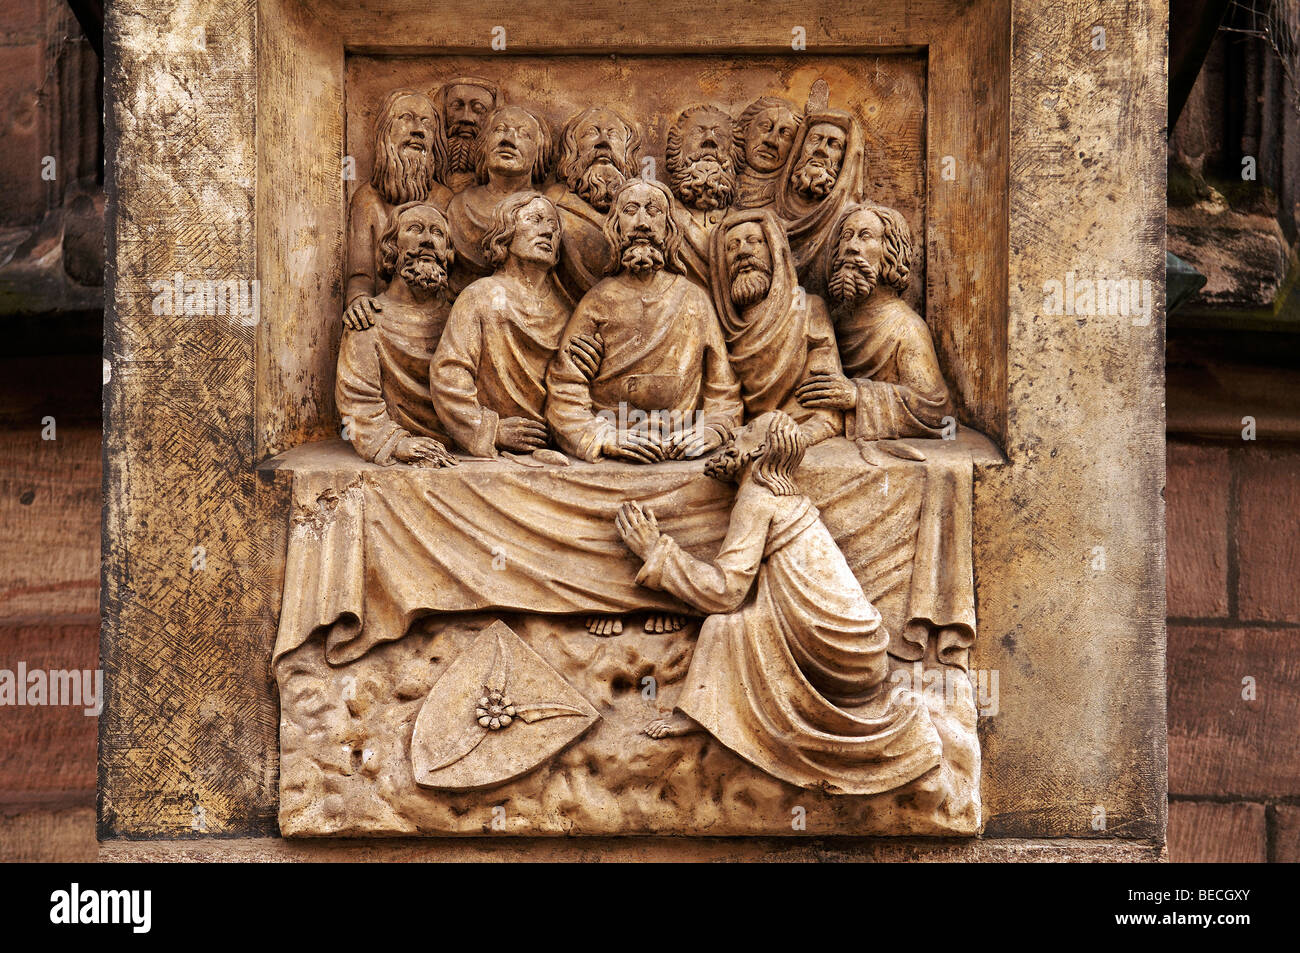 Old stone carving of the last supper on sebaldus church